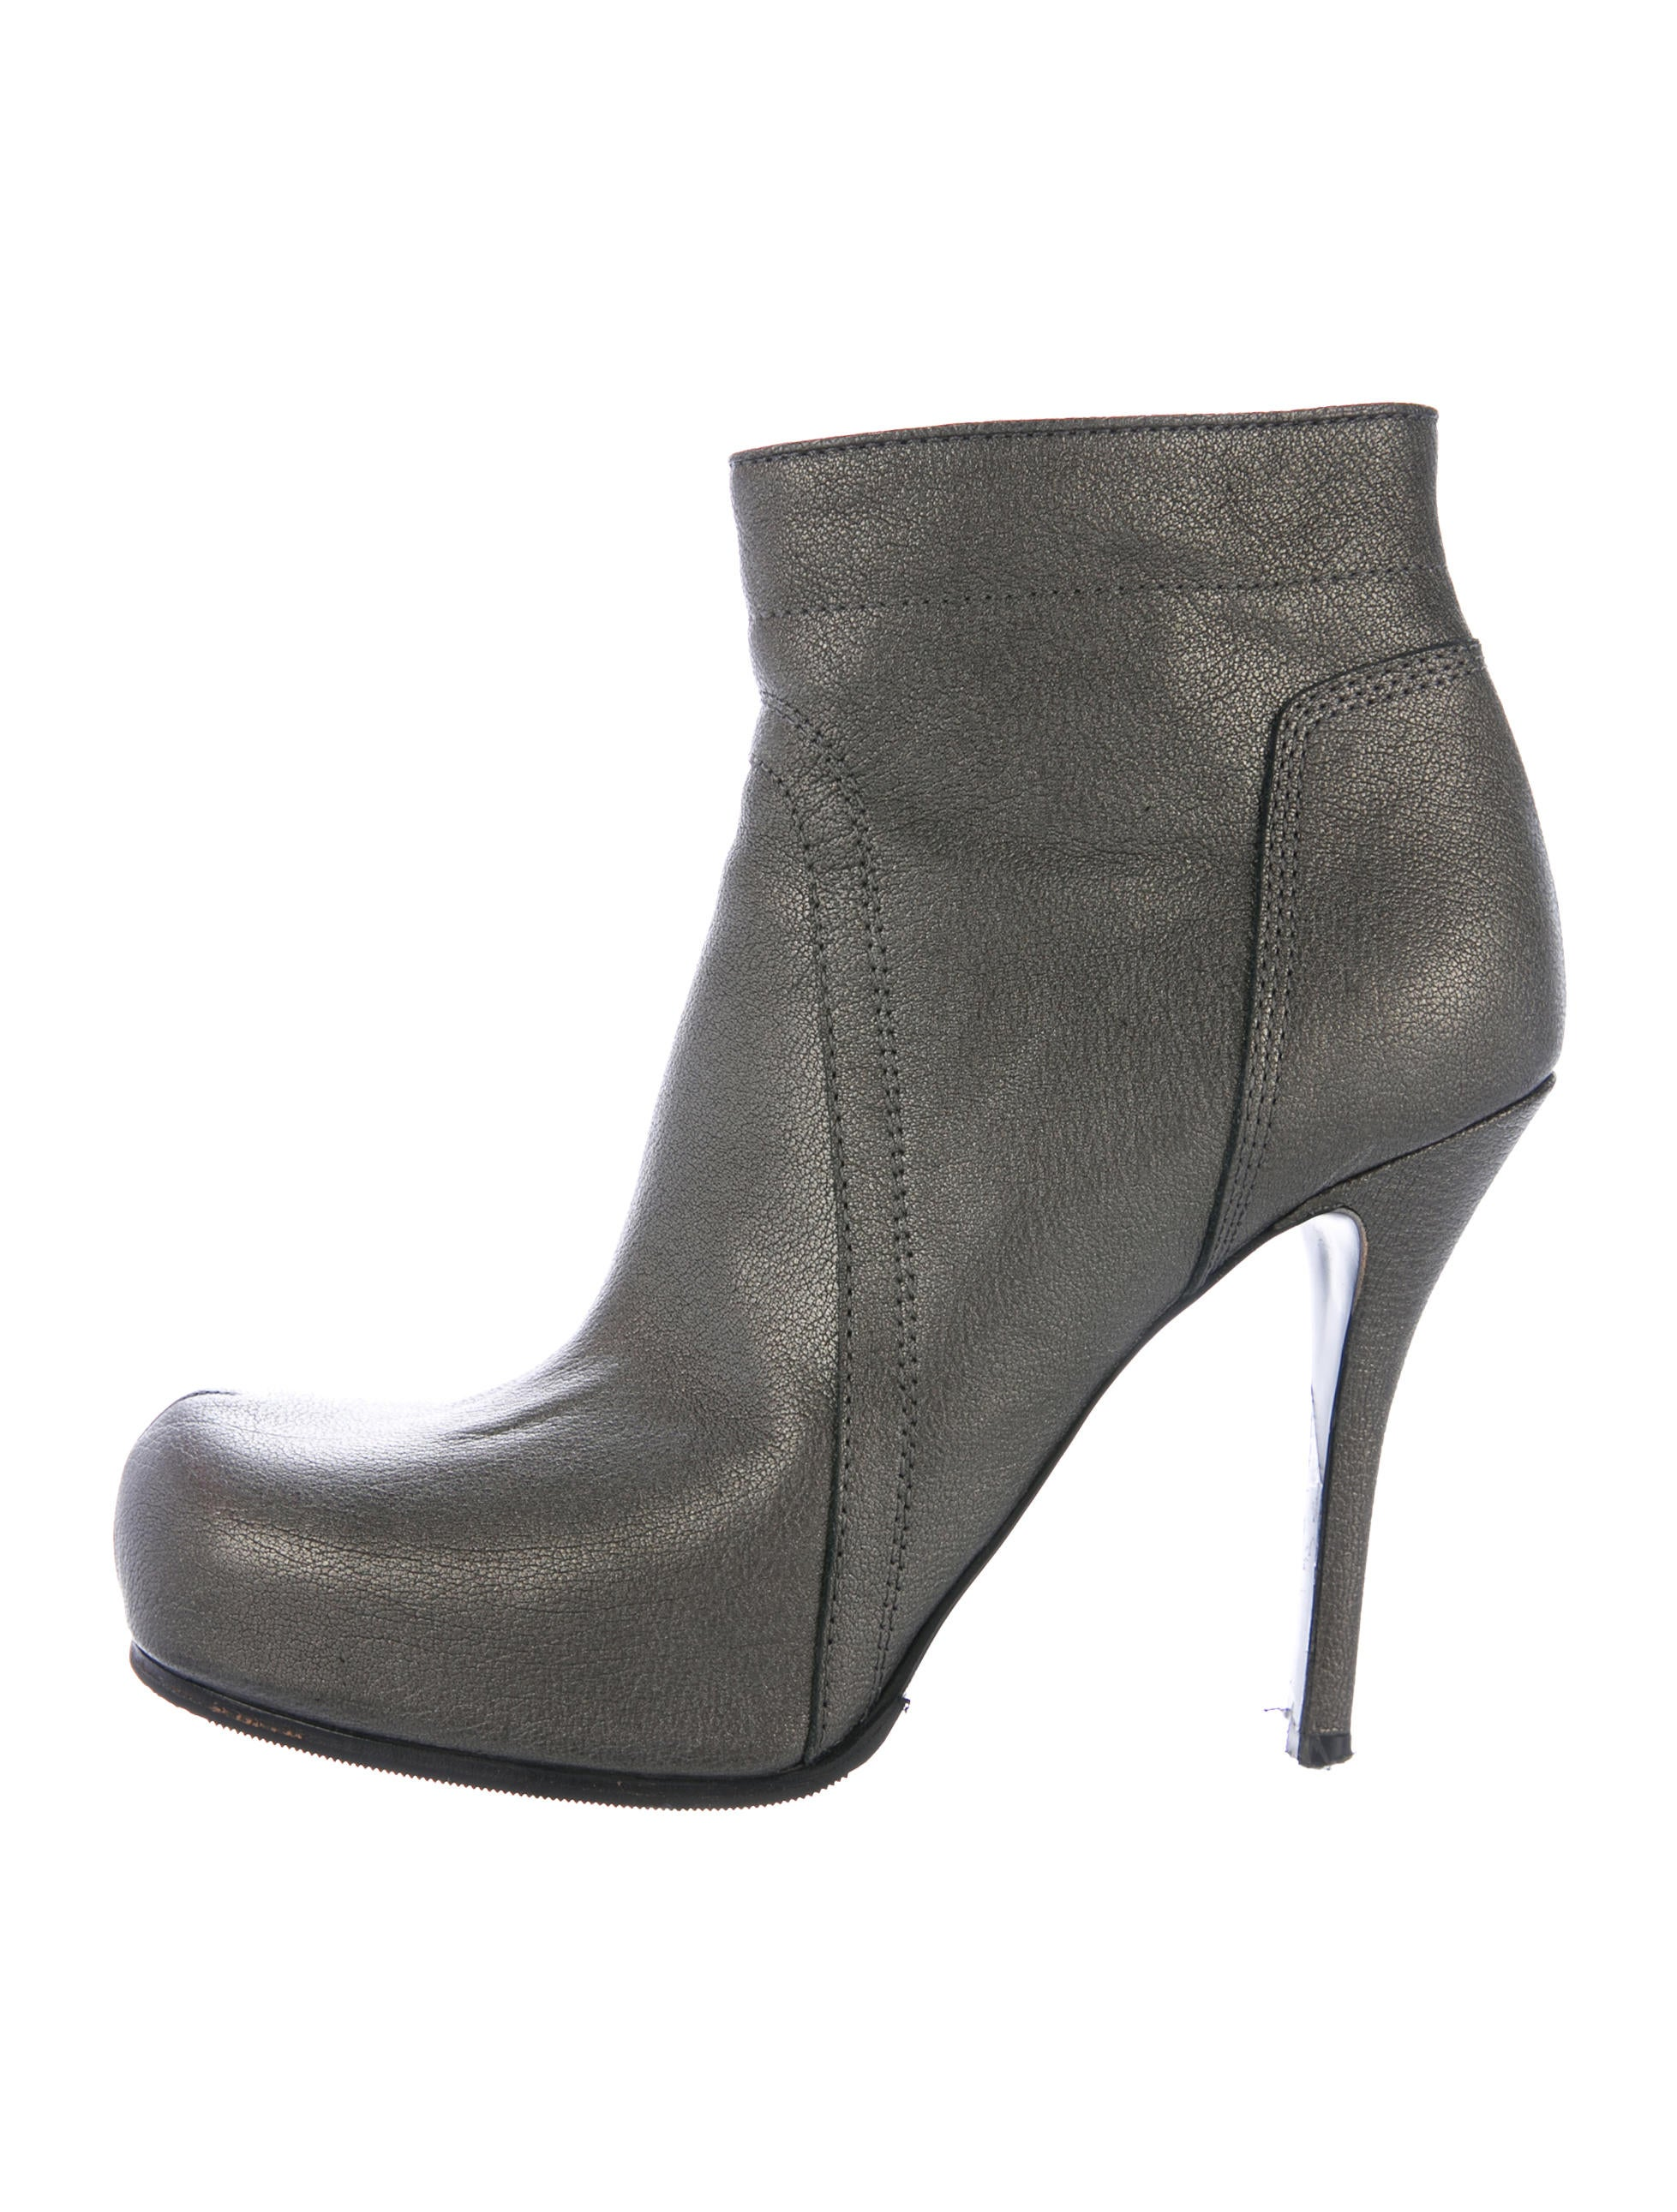 Metallic Leather Boots : Rick owens metallic leather ankle boots shoes ric